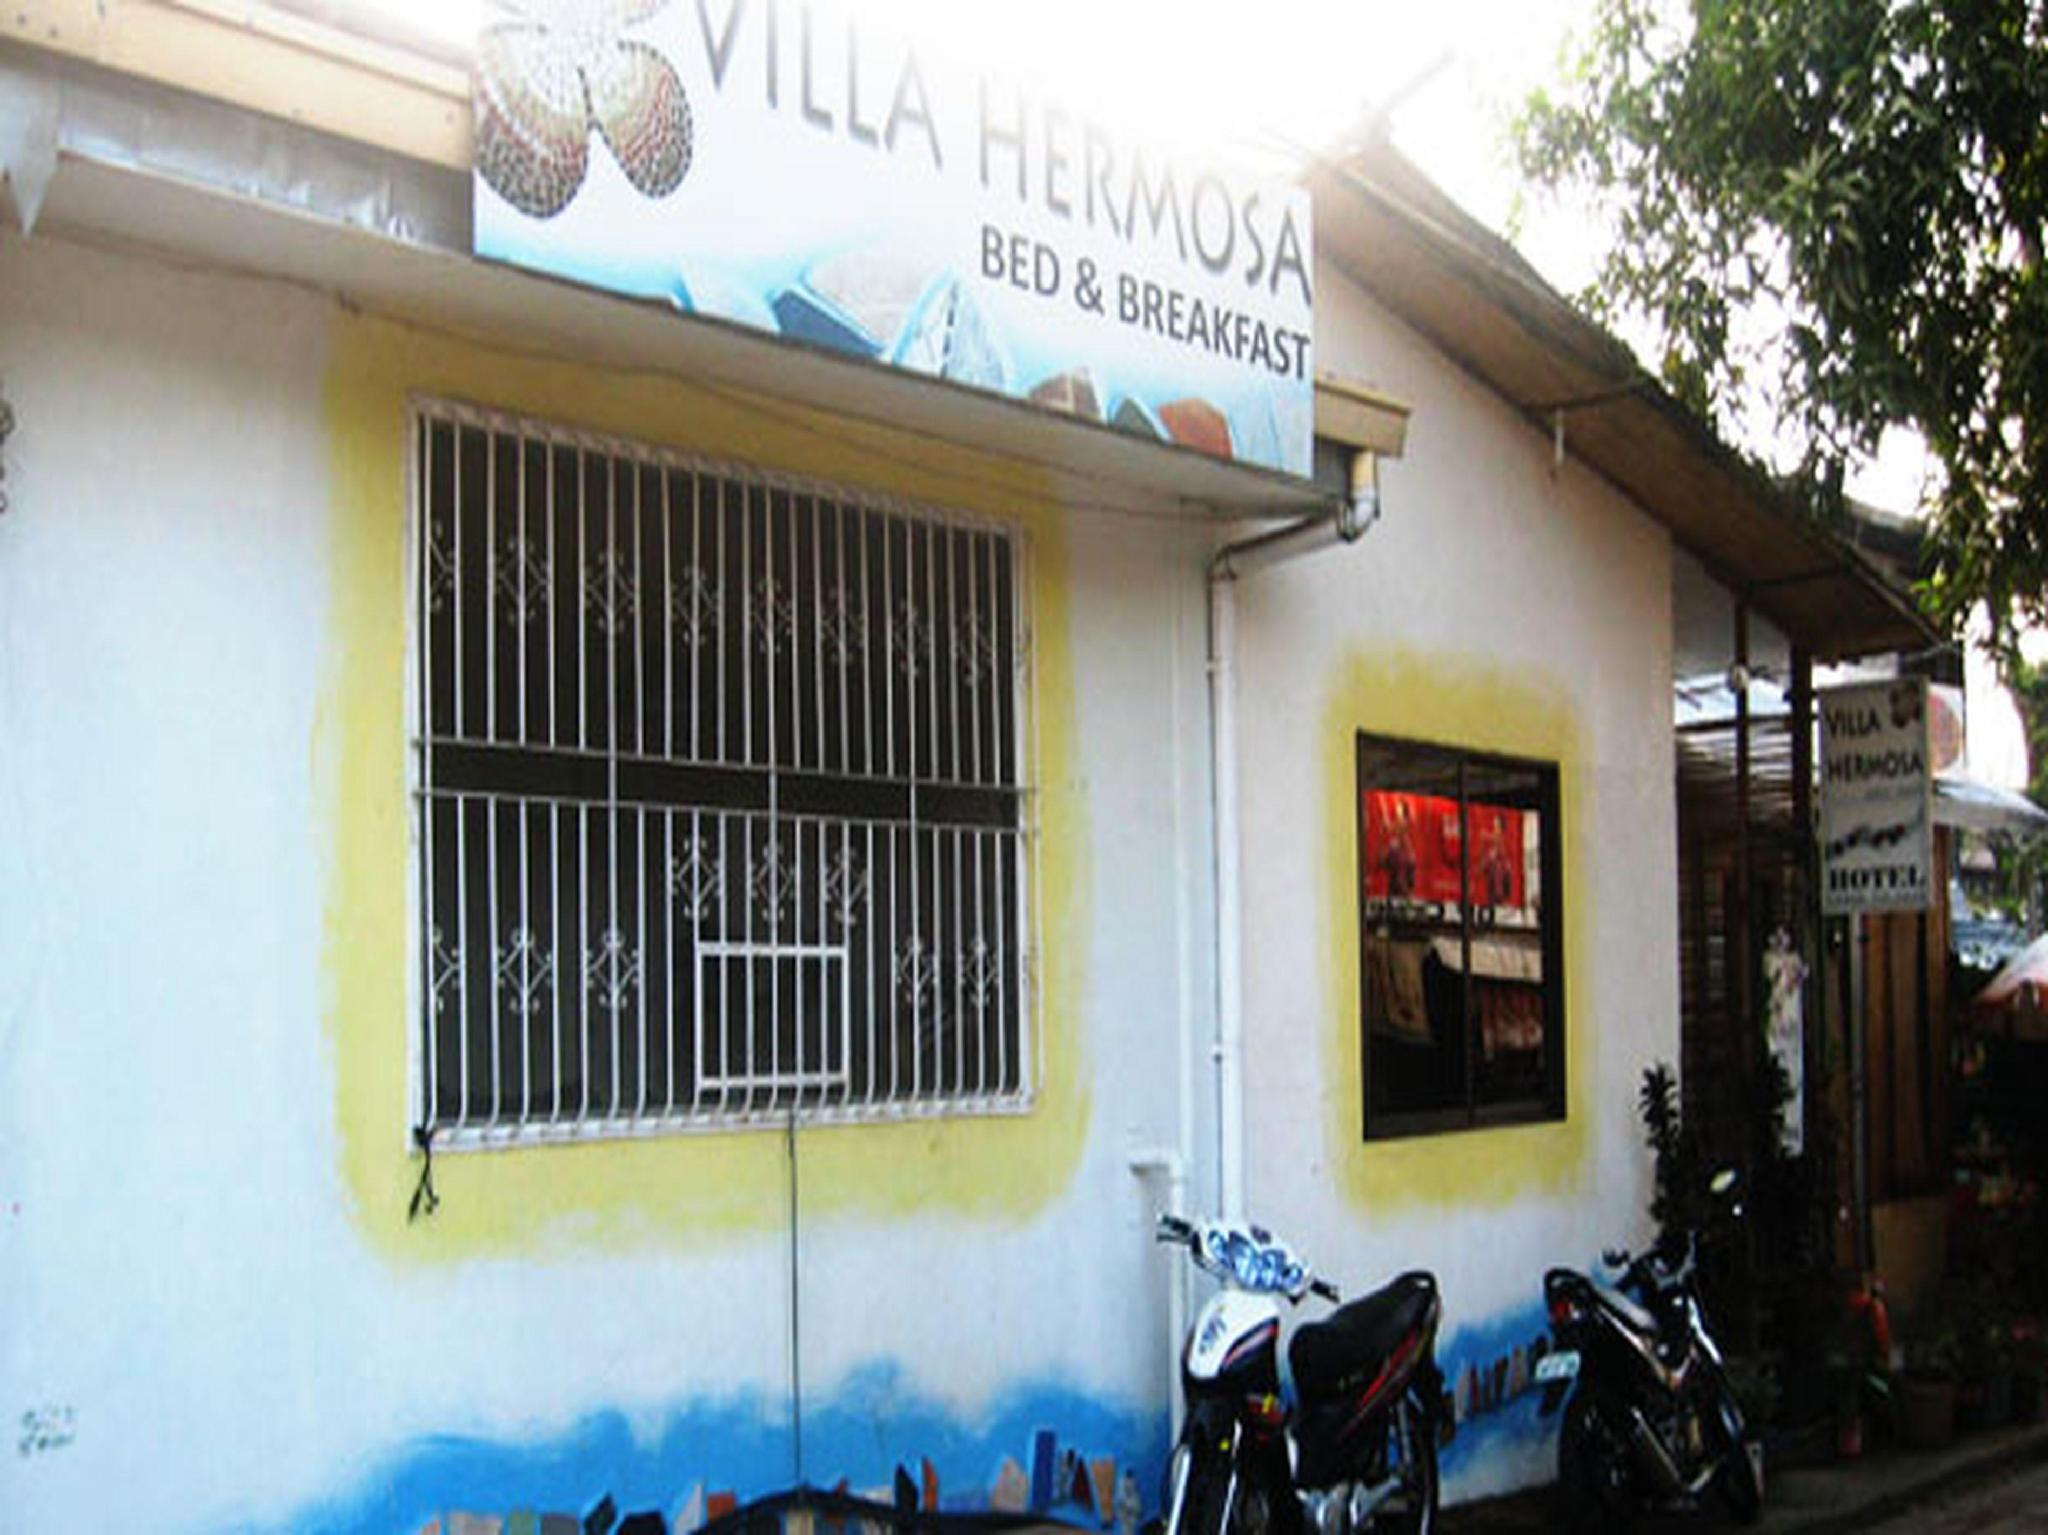 Villa Hermosa Bed and Breakfast